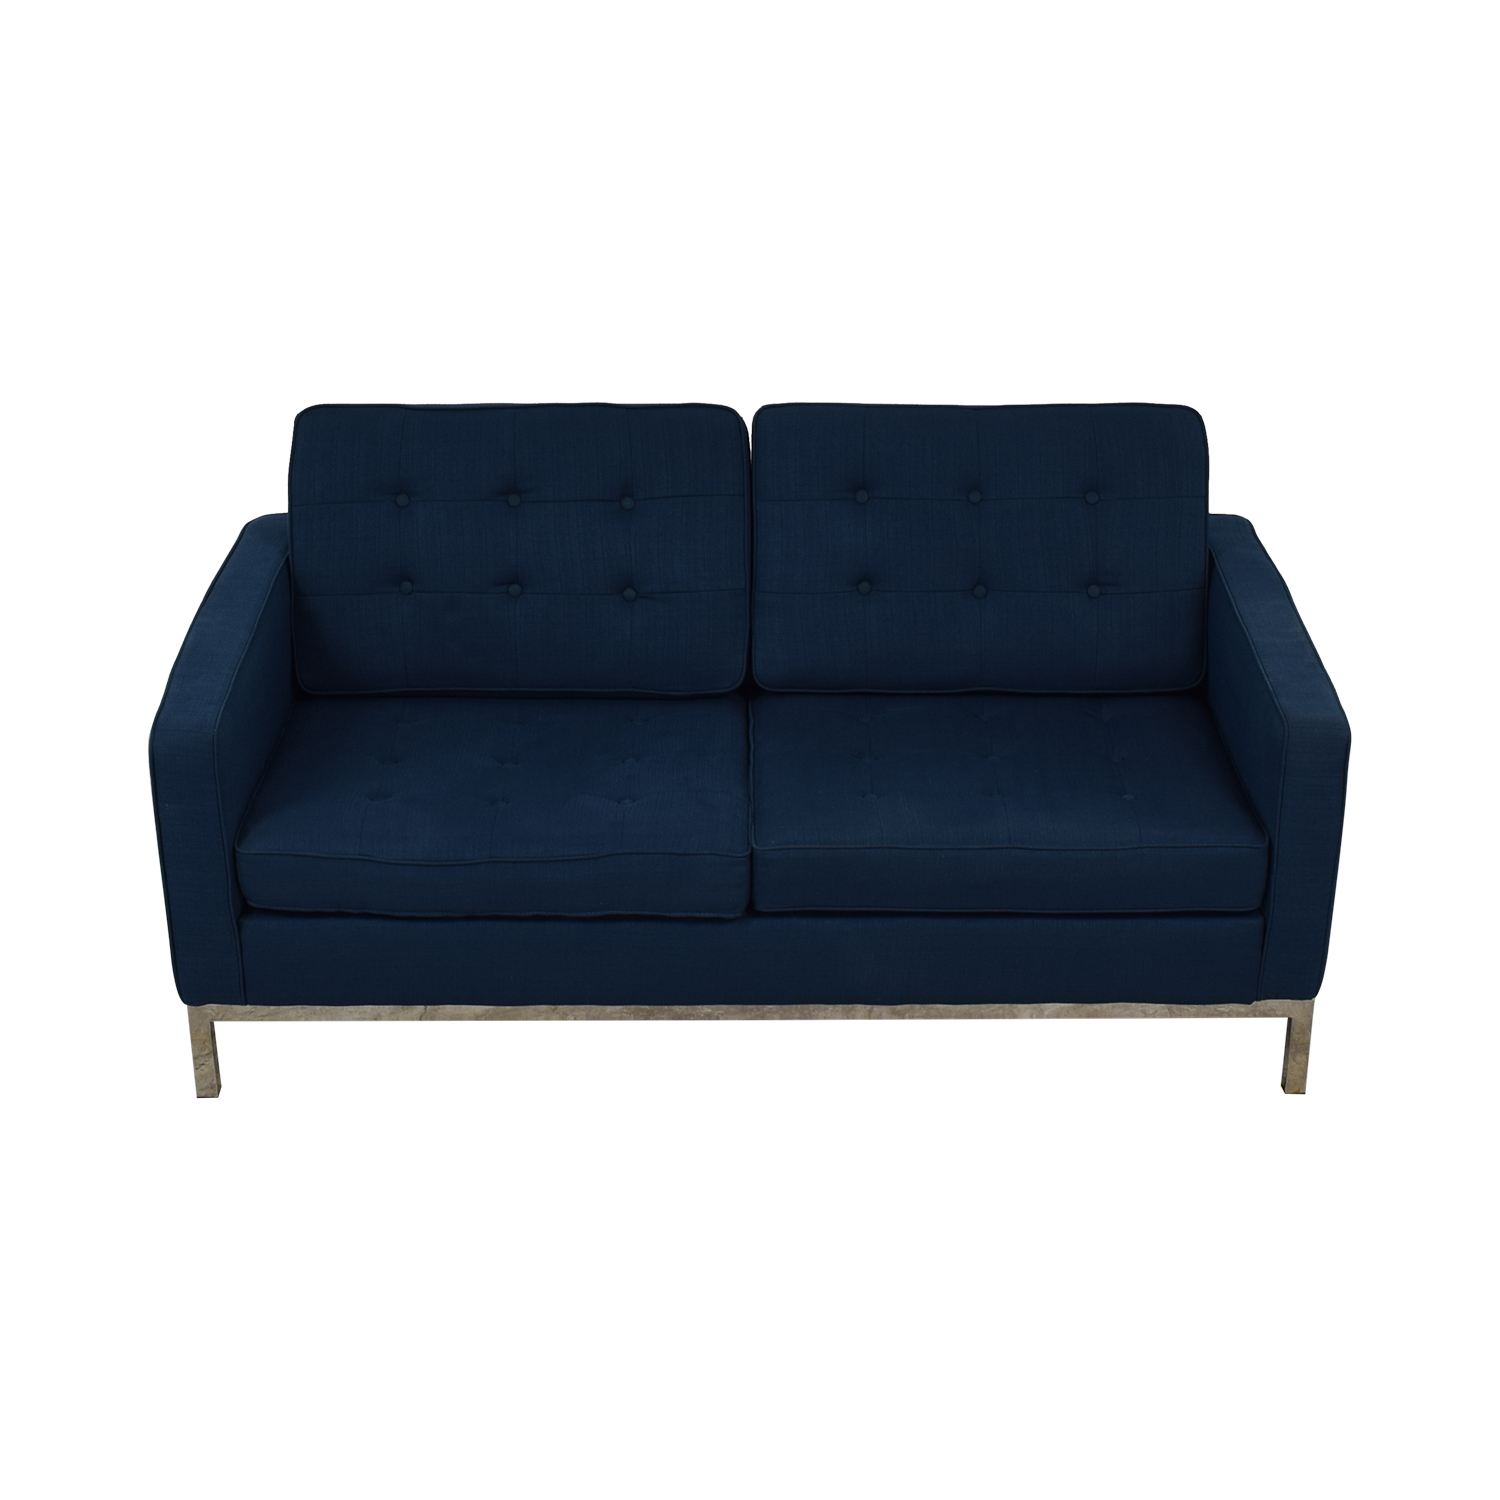 Modway Modway Loft Blue Tufted Two-Cushion Loveseat nj